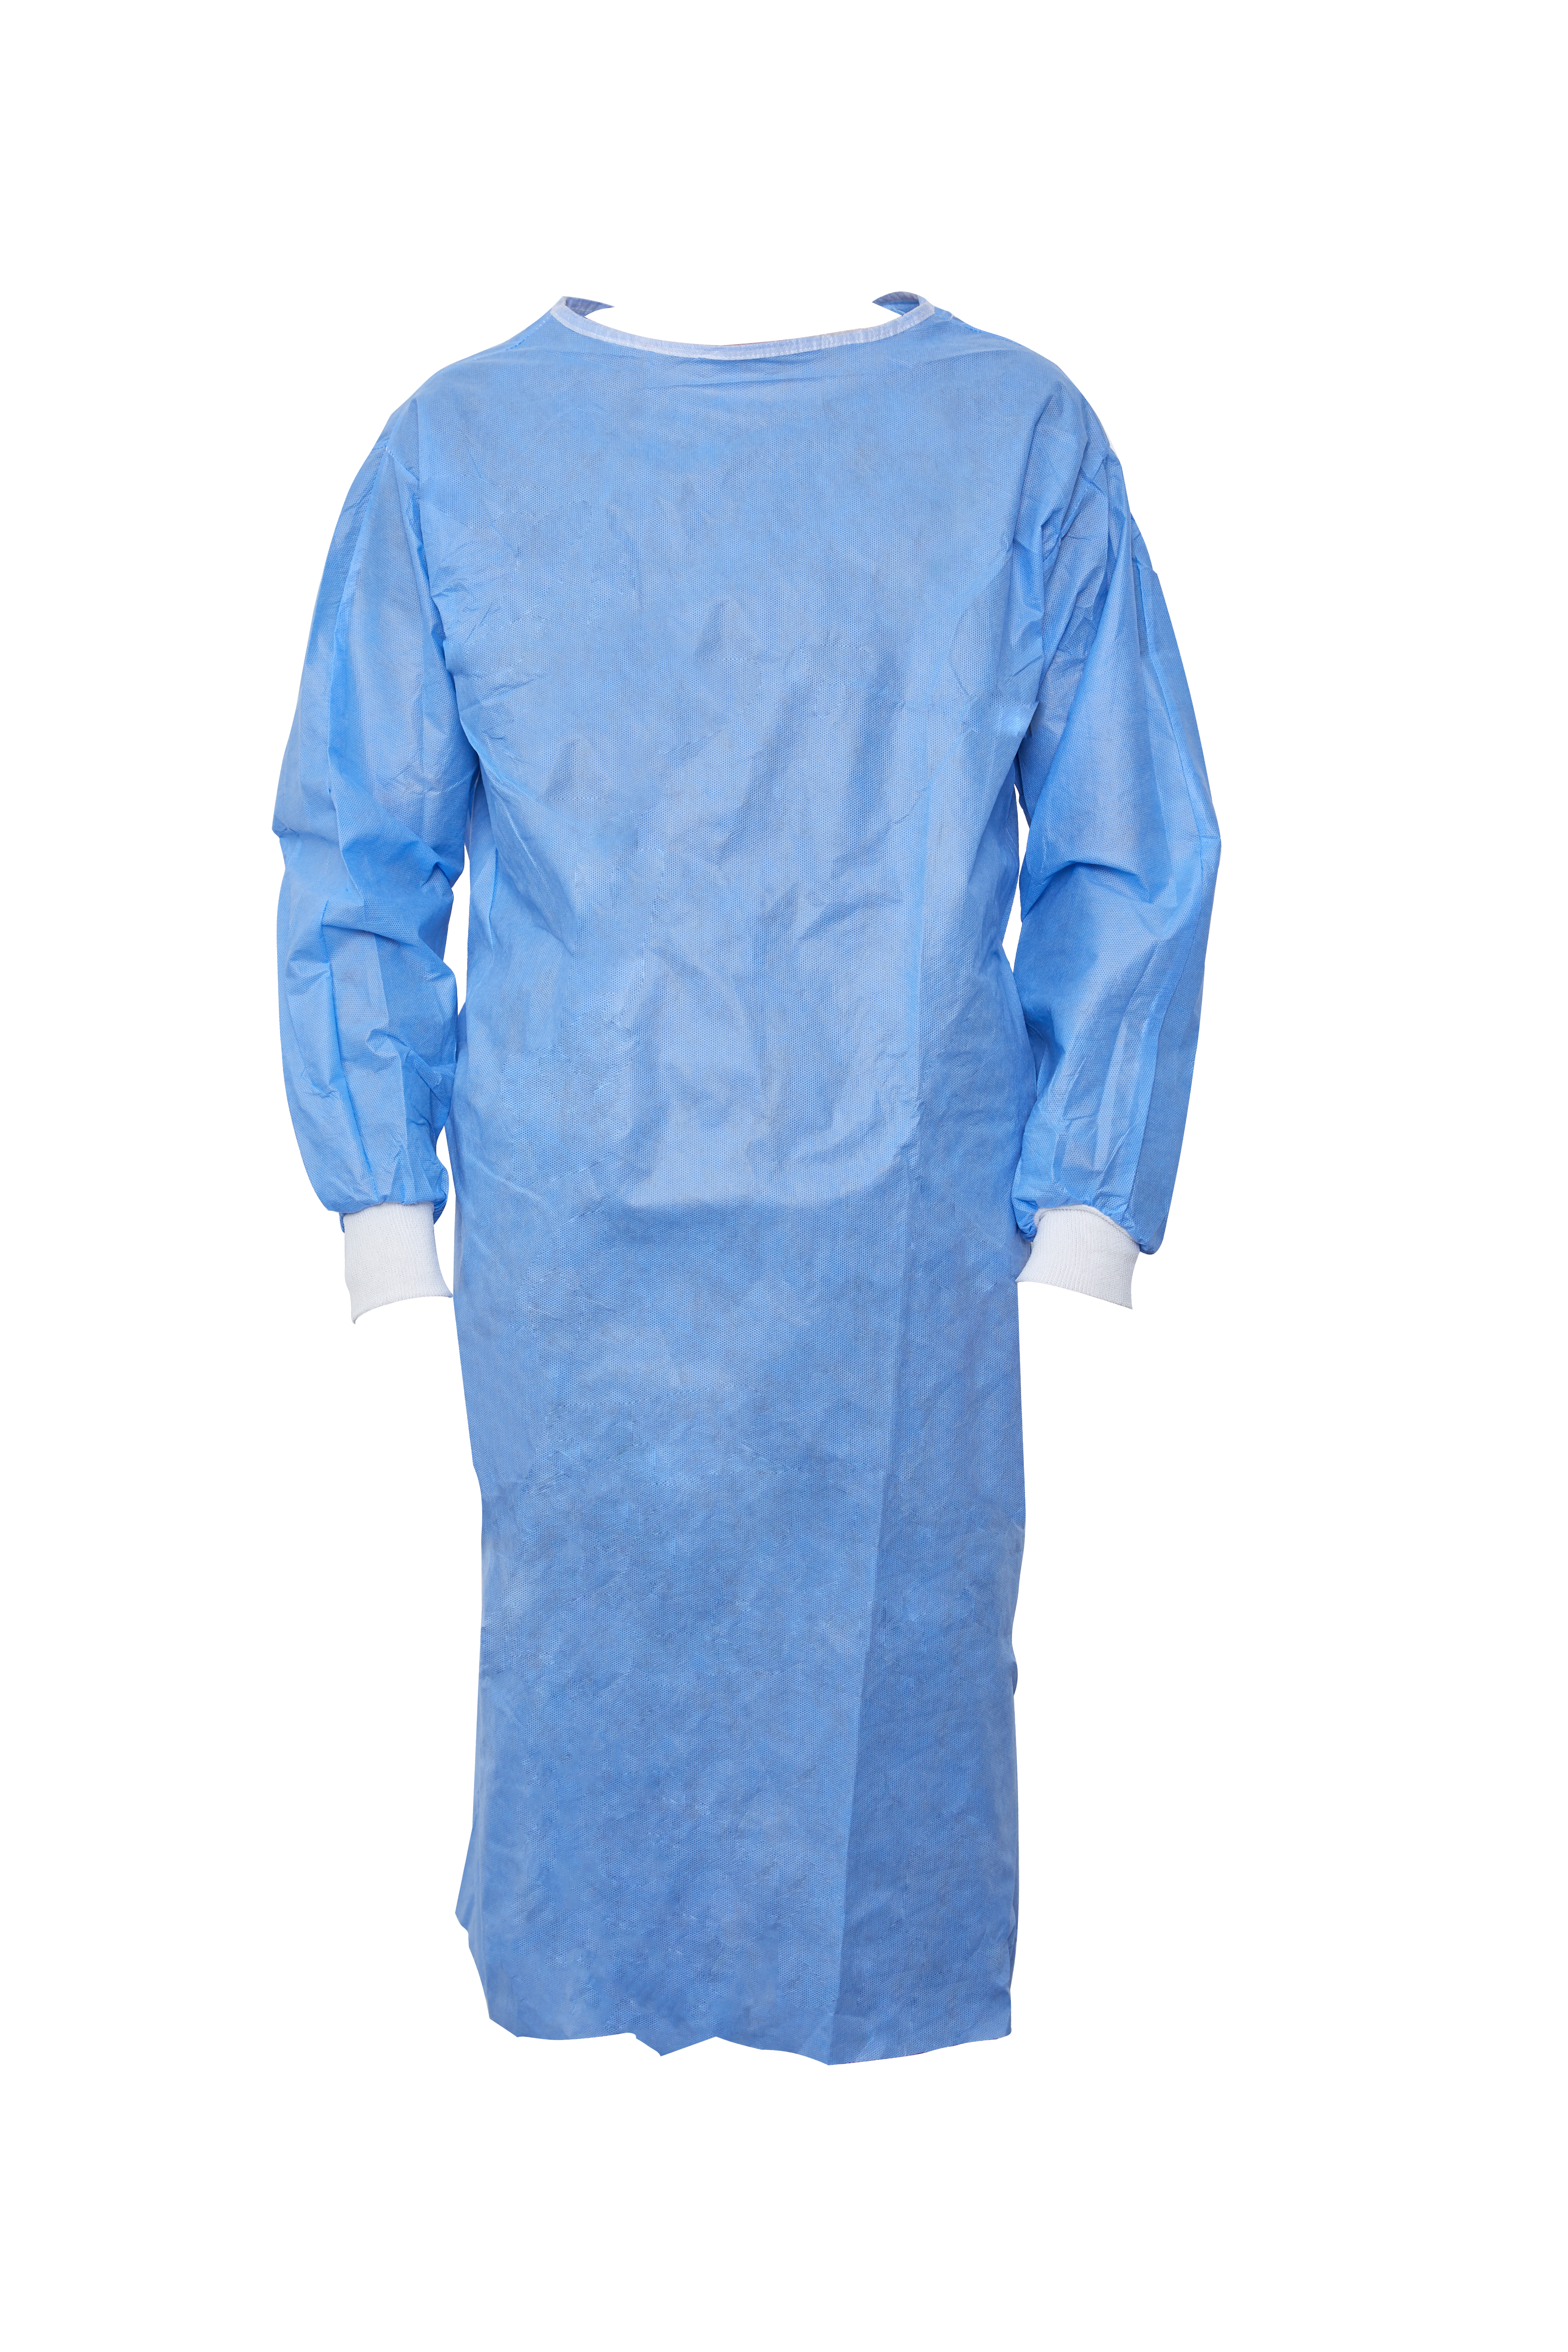 LEVEL 3 STERILE ISOLATION GOWNS,  75 GOWNS PER CASE, $4.99 EACH, FREE SHIPPING